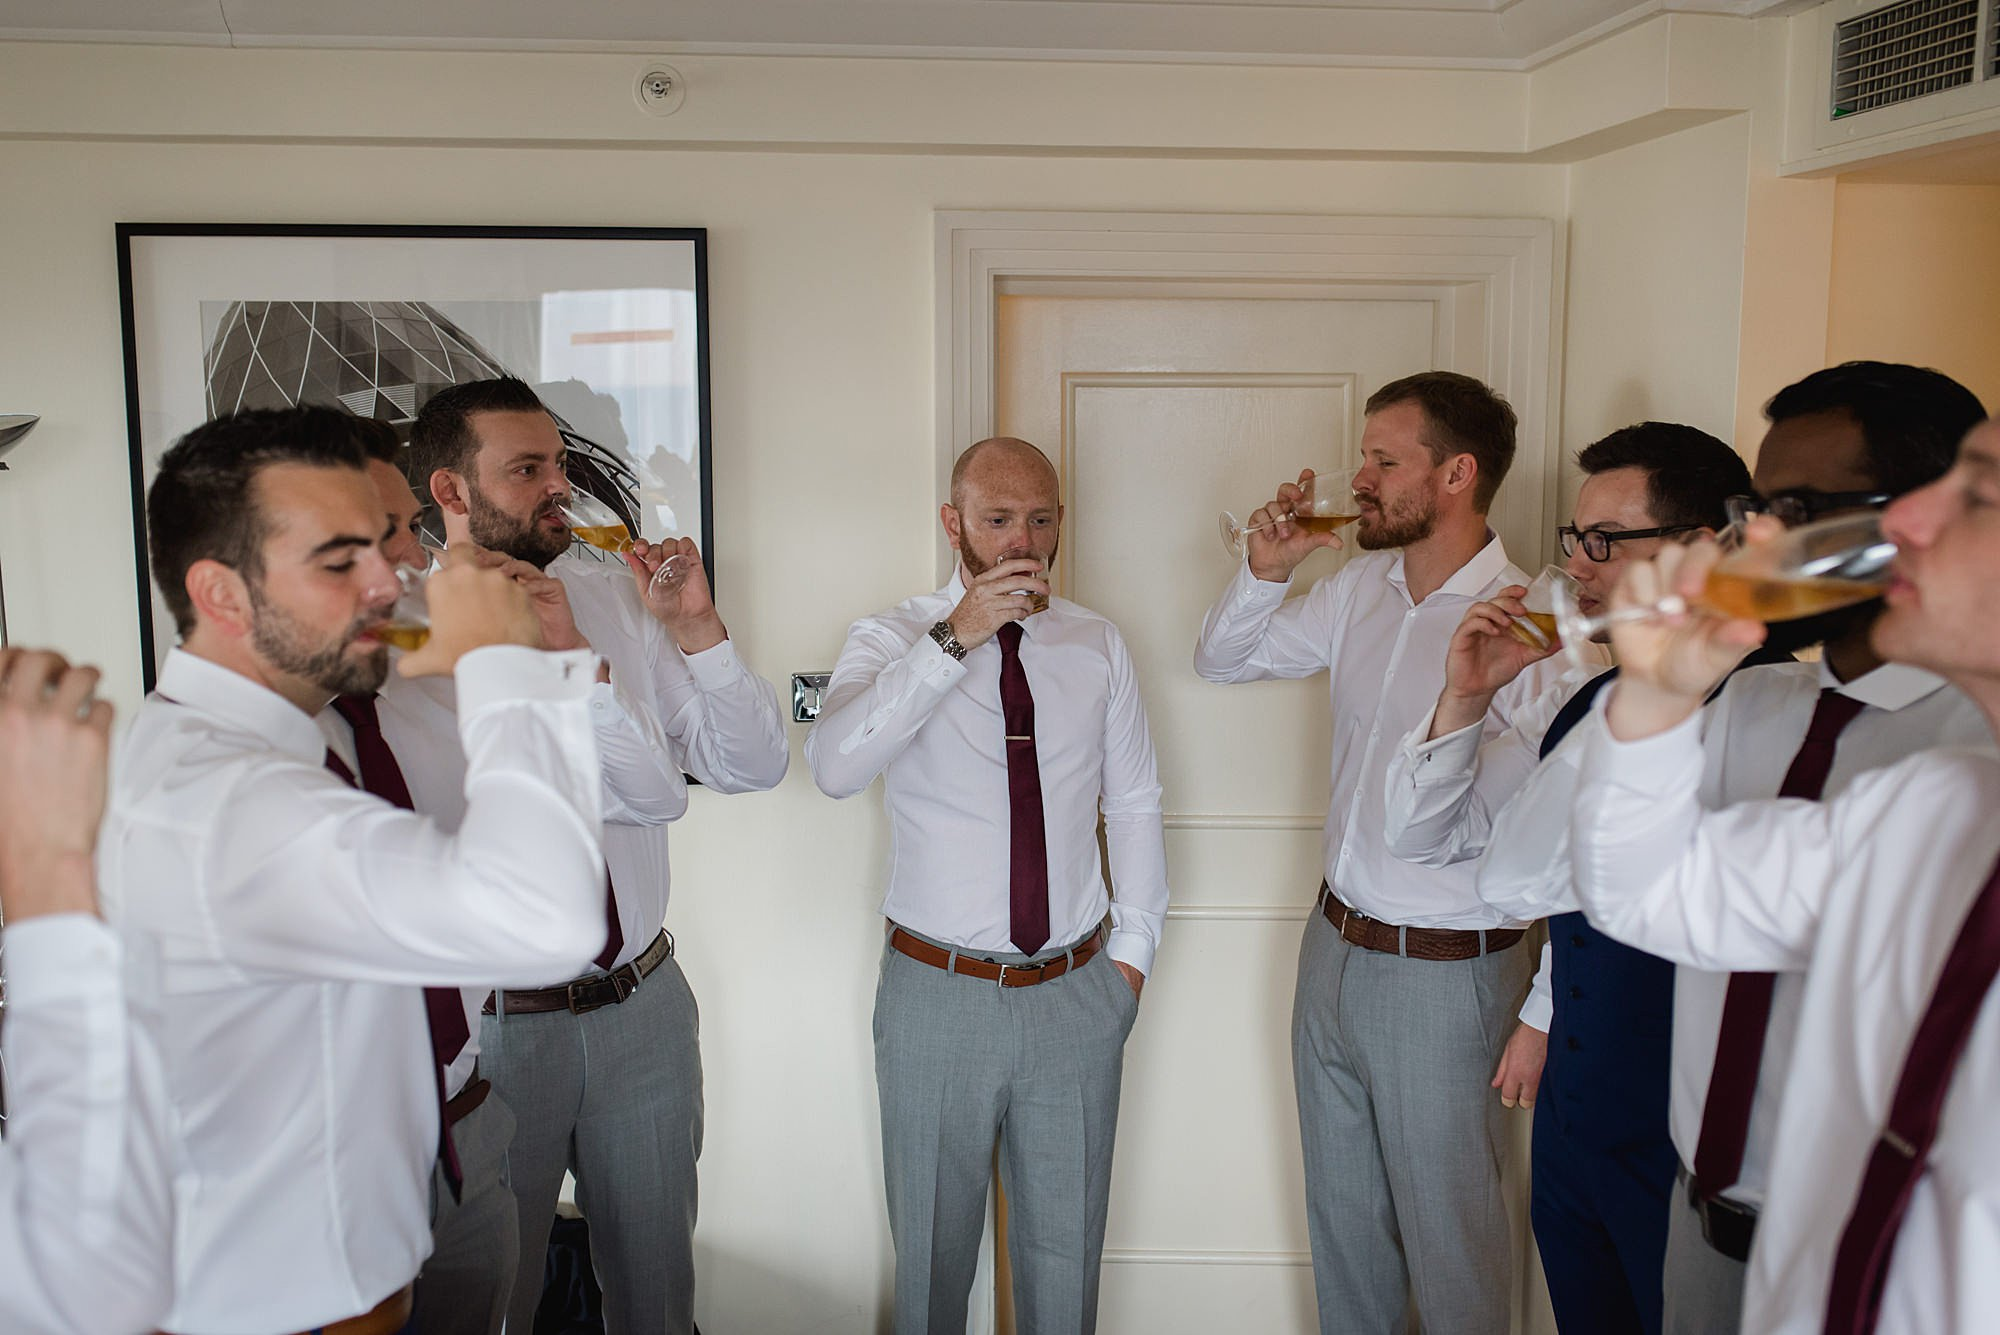 groomsmen taking a shot of whiskey together